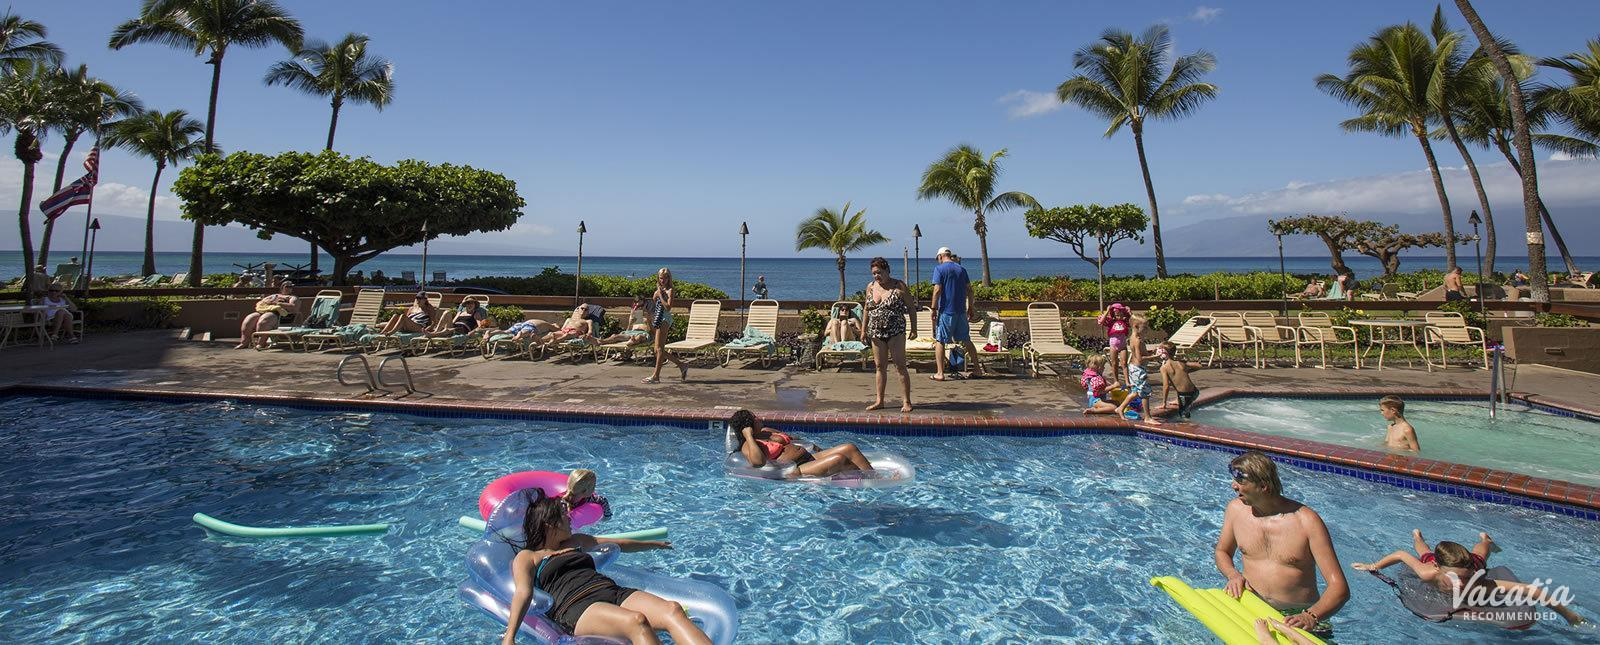 Sands of Kahana family friendly pool